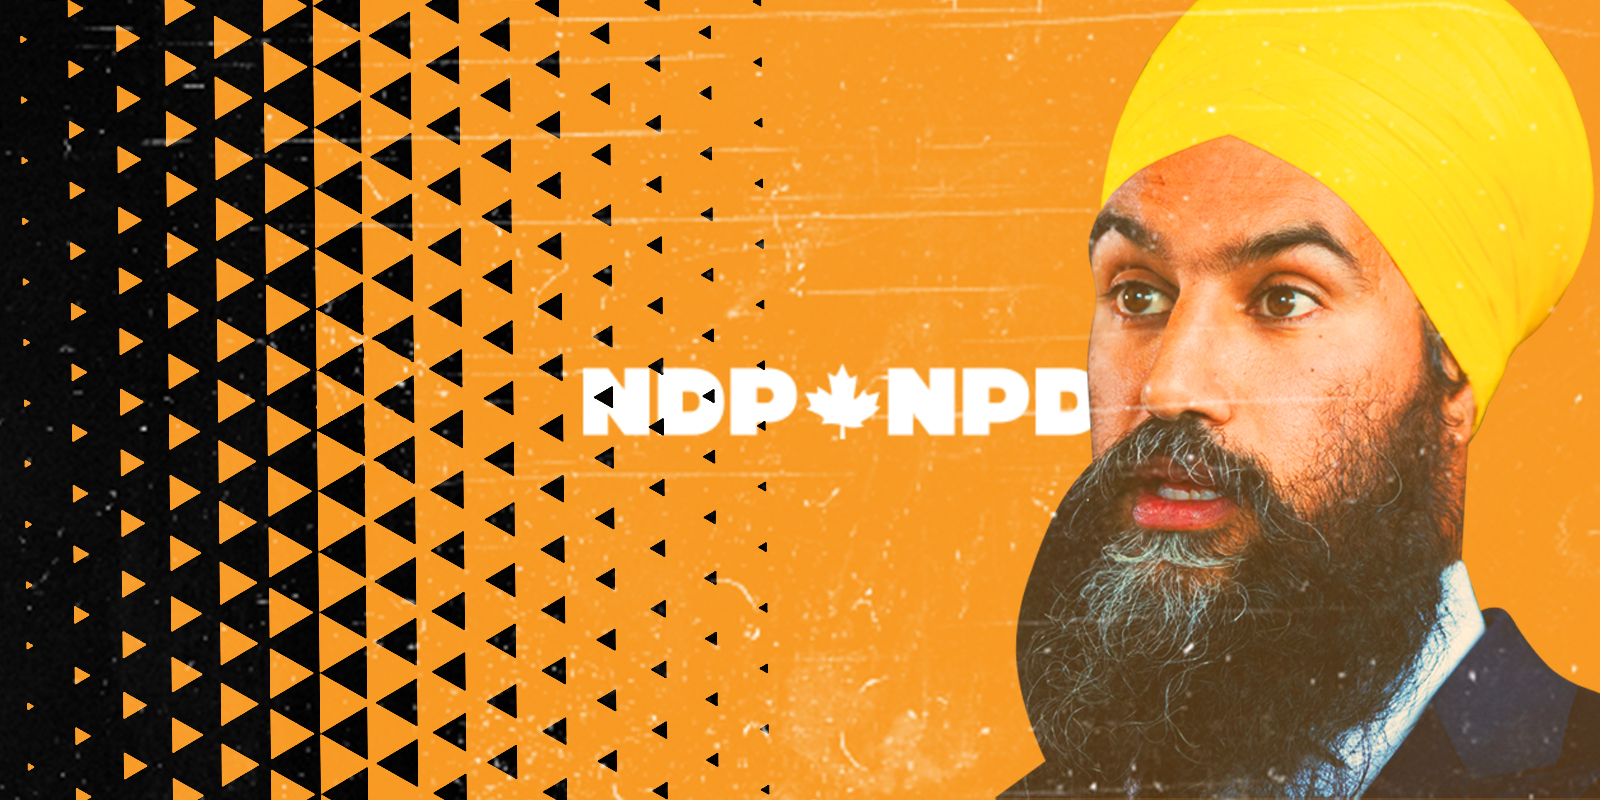 For the NDP it's time to build a real progressive alternative